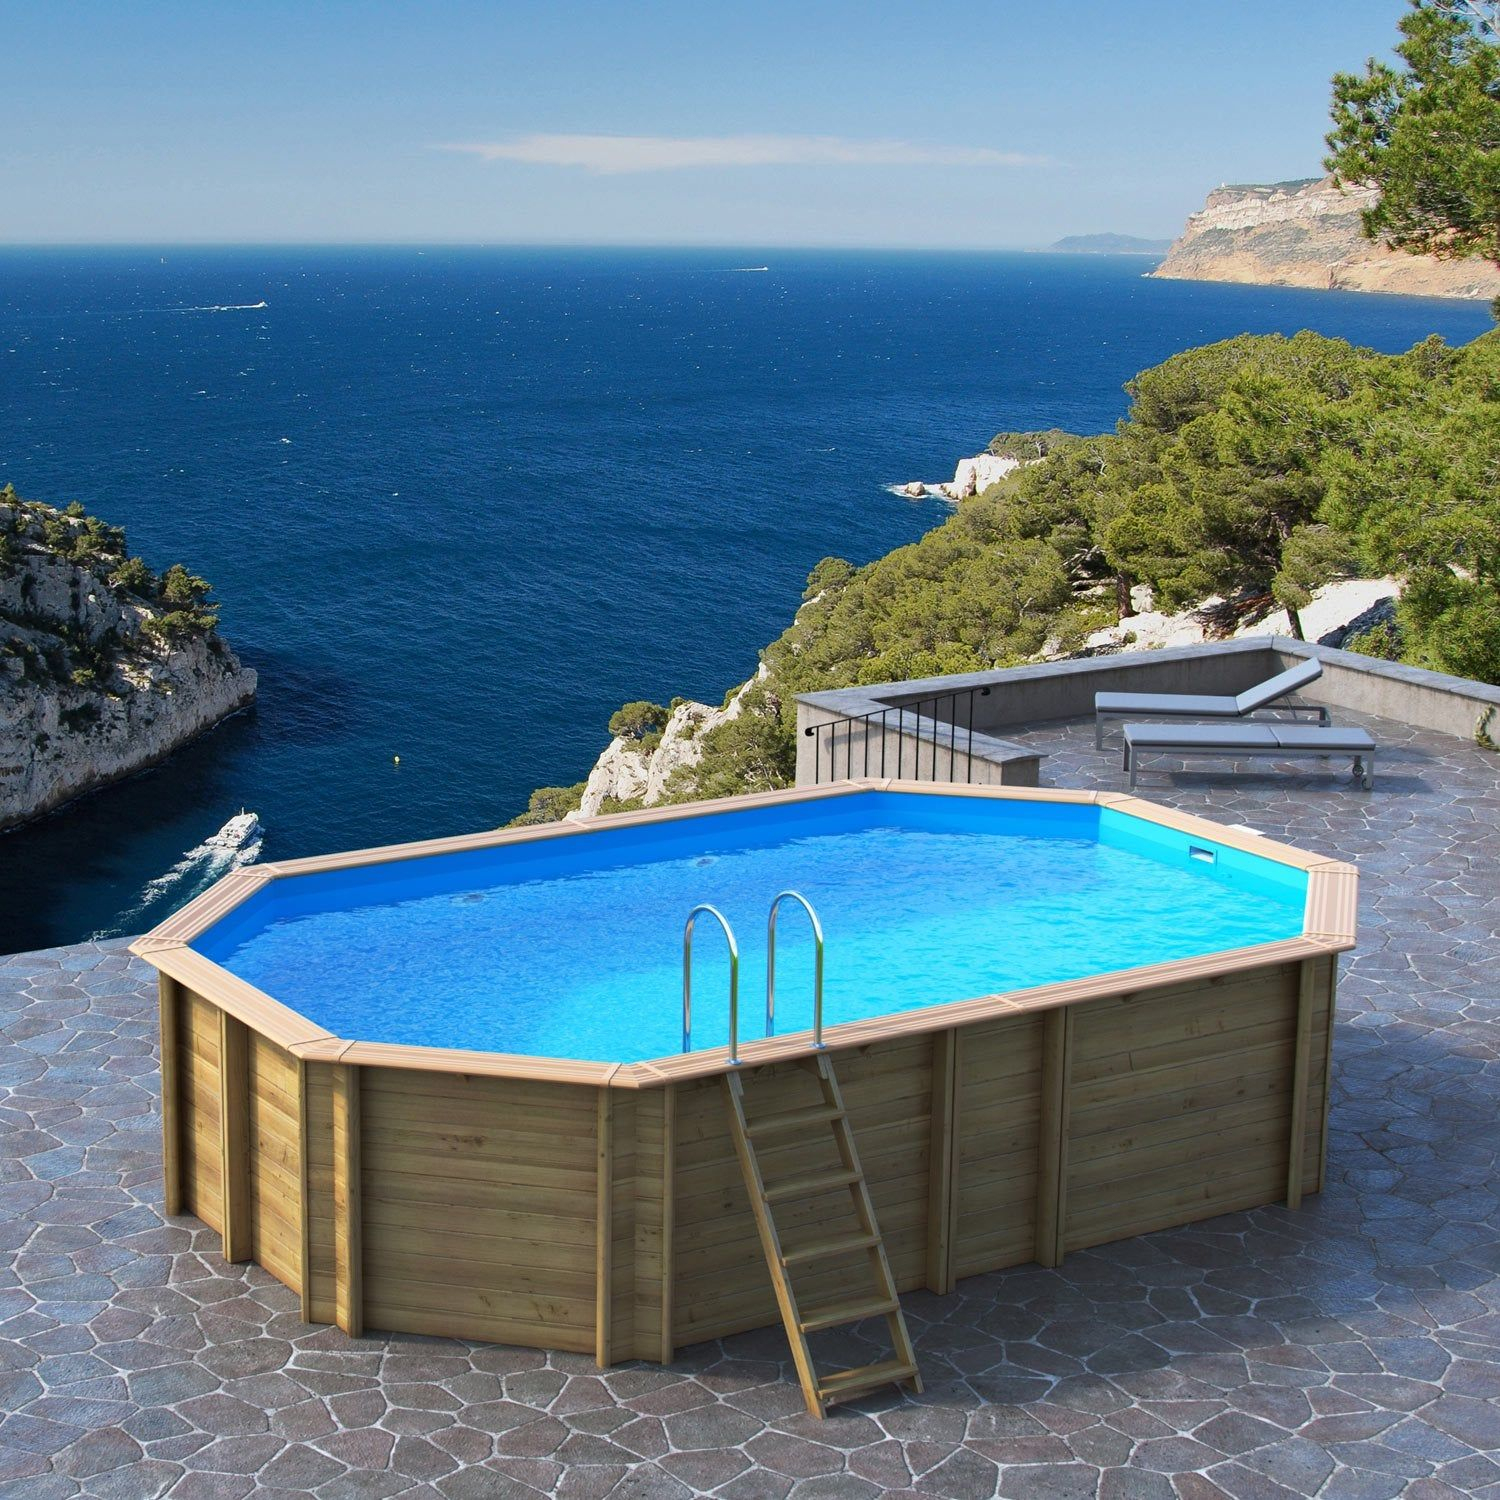 Piscine Bois Odyssea By Proswell Bwt Mypool, L.6.4 X L.4.01 ... encequiconcerne Piscine Proswell